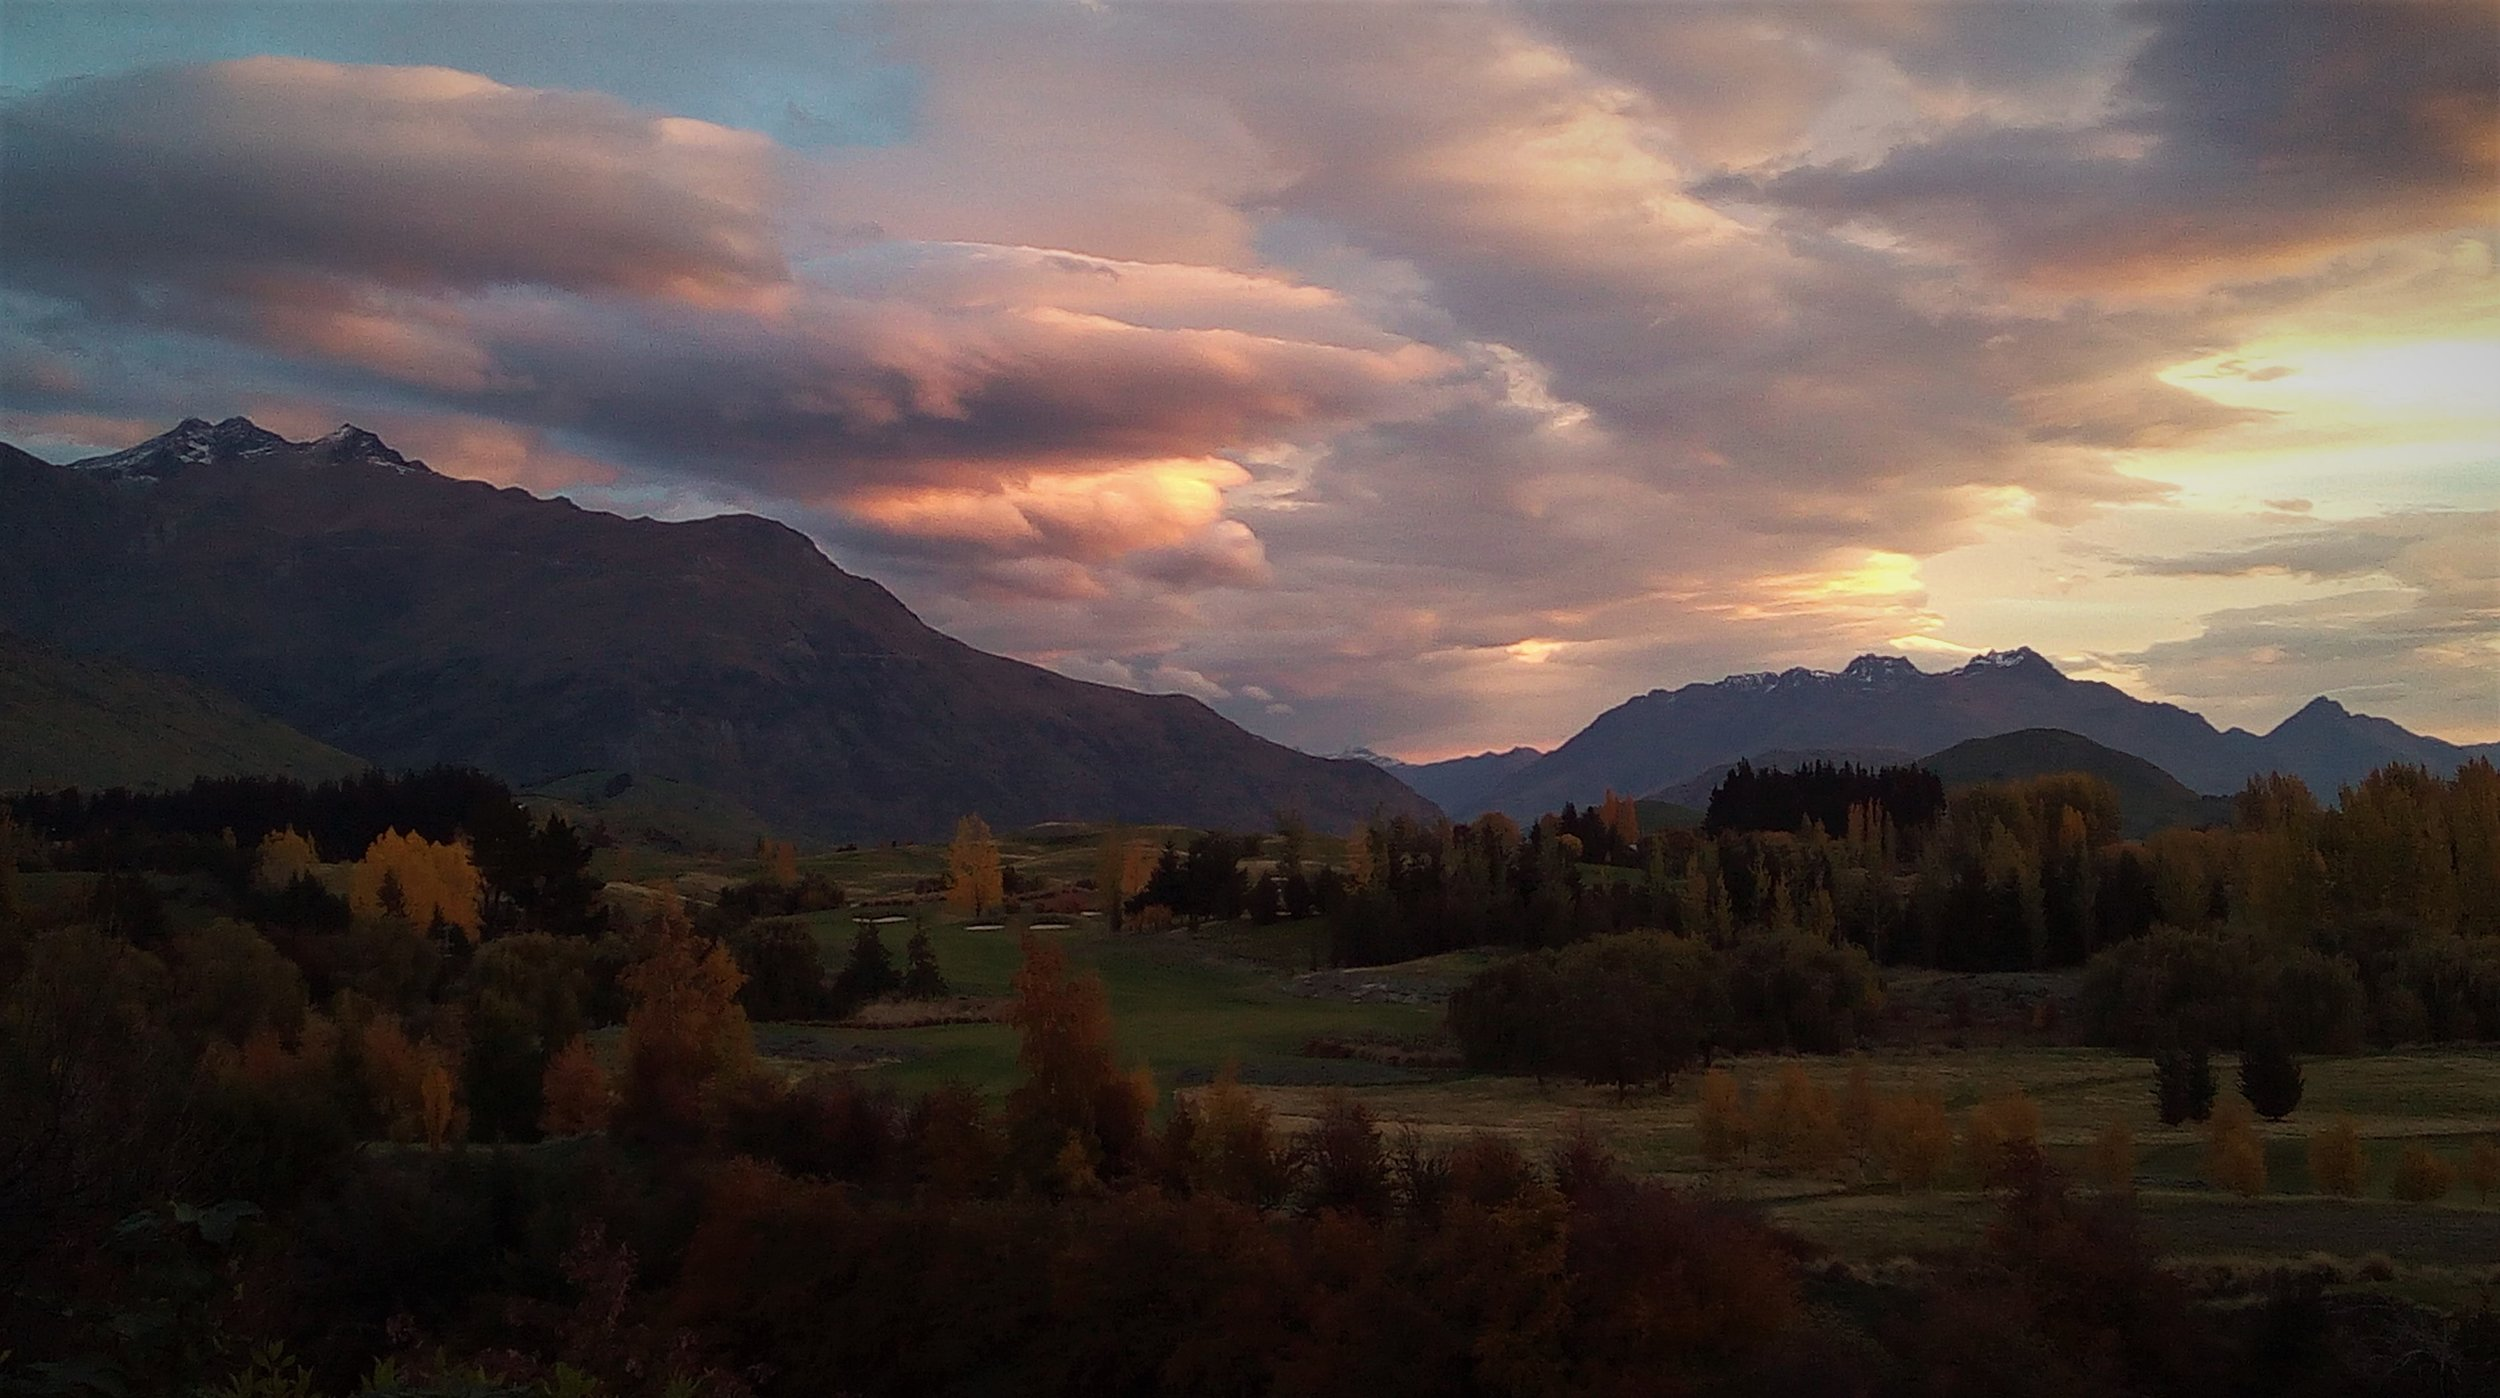 In Arrowtown at Sunset